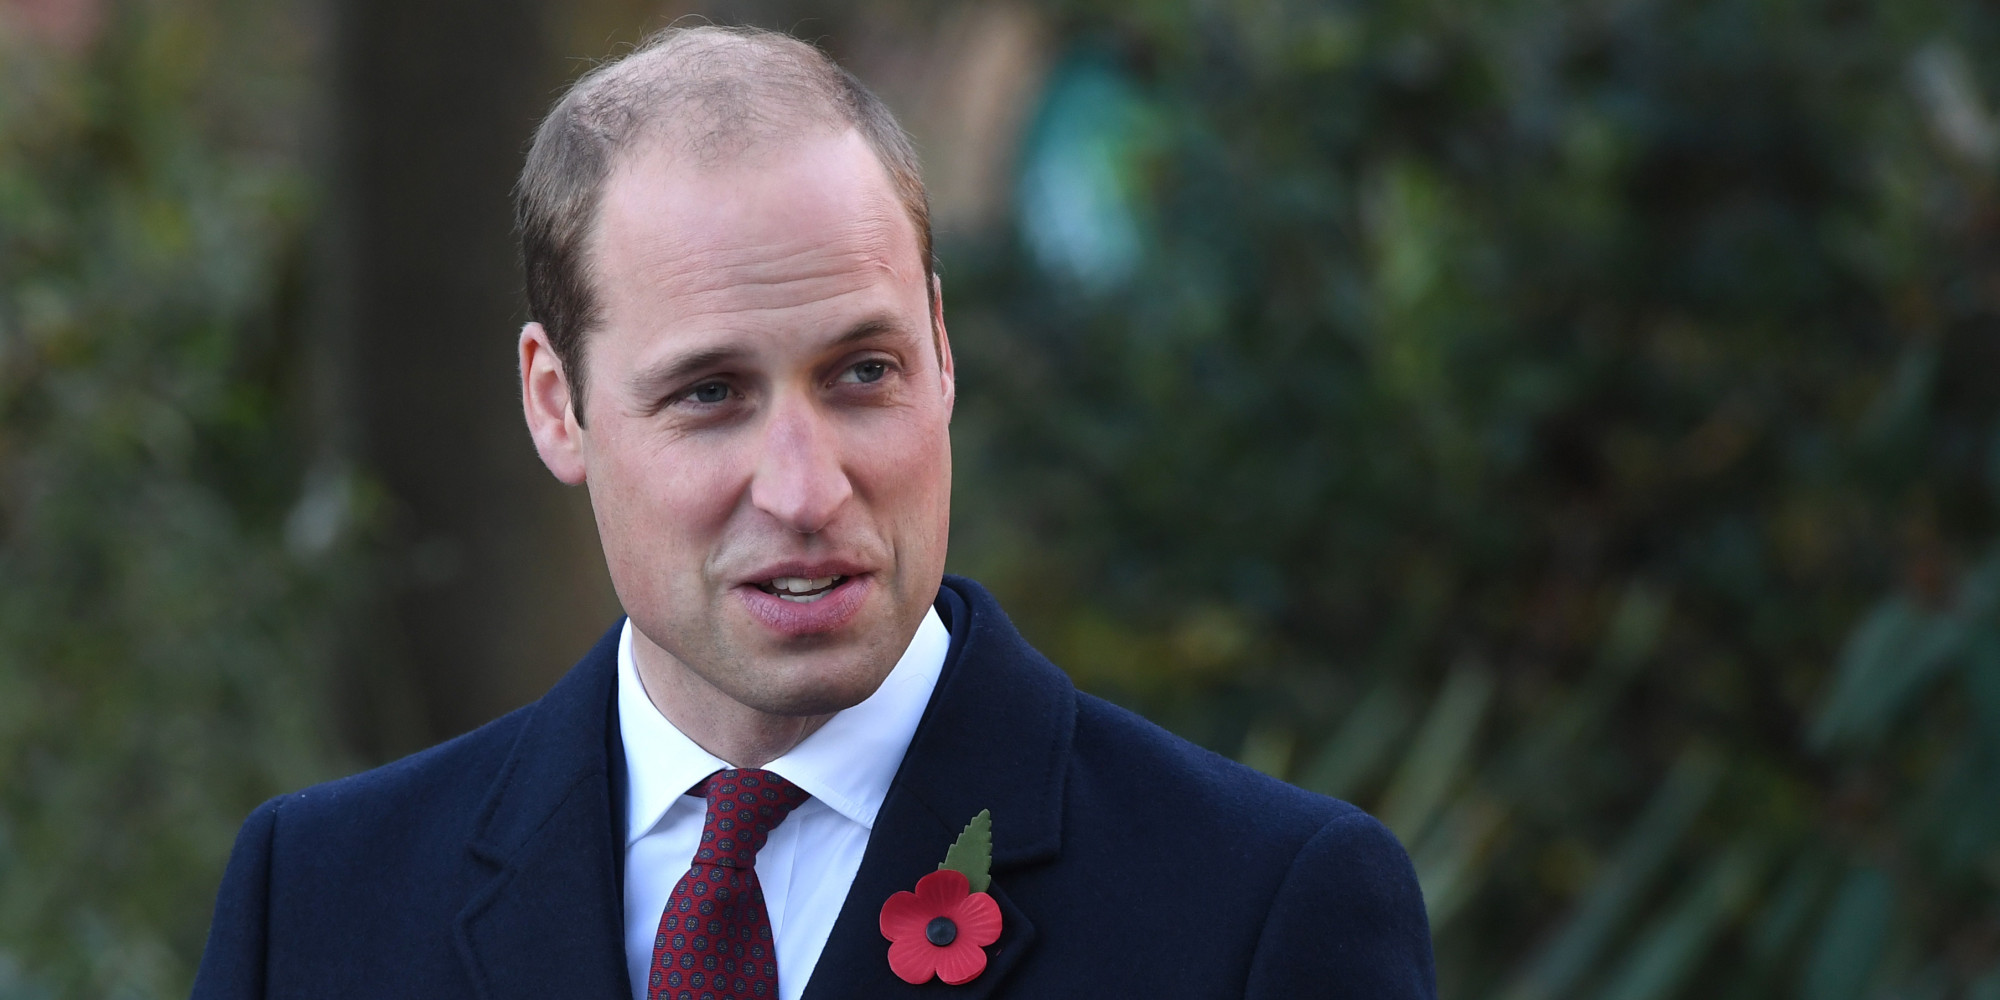 Prince William Supports Prince Harry's Statement About